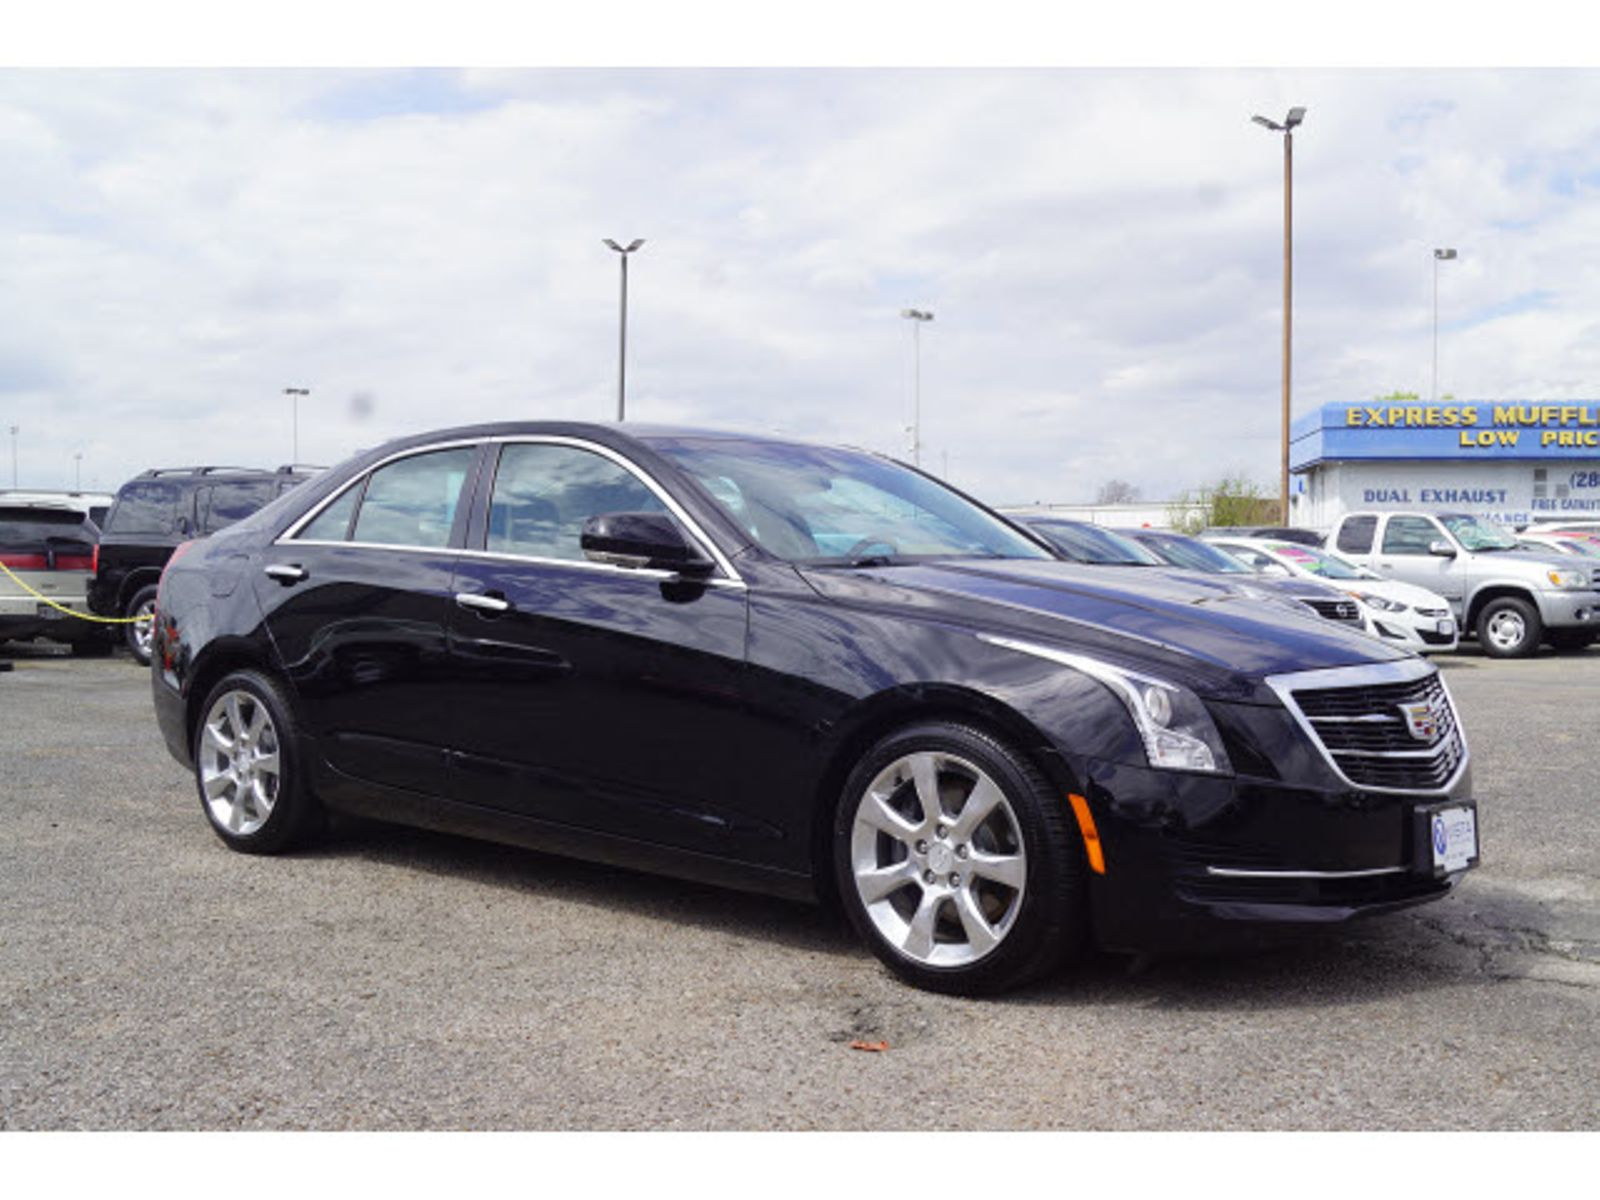 vehicles sedan cadillac in vehicle ats photo greenville sc vehiclesearchresults used sale for